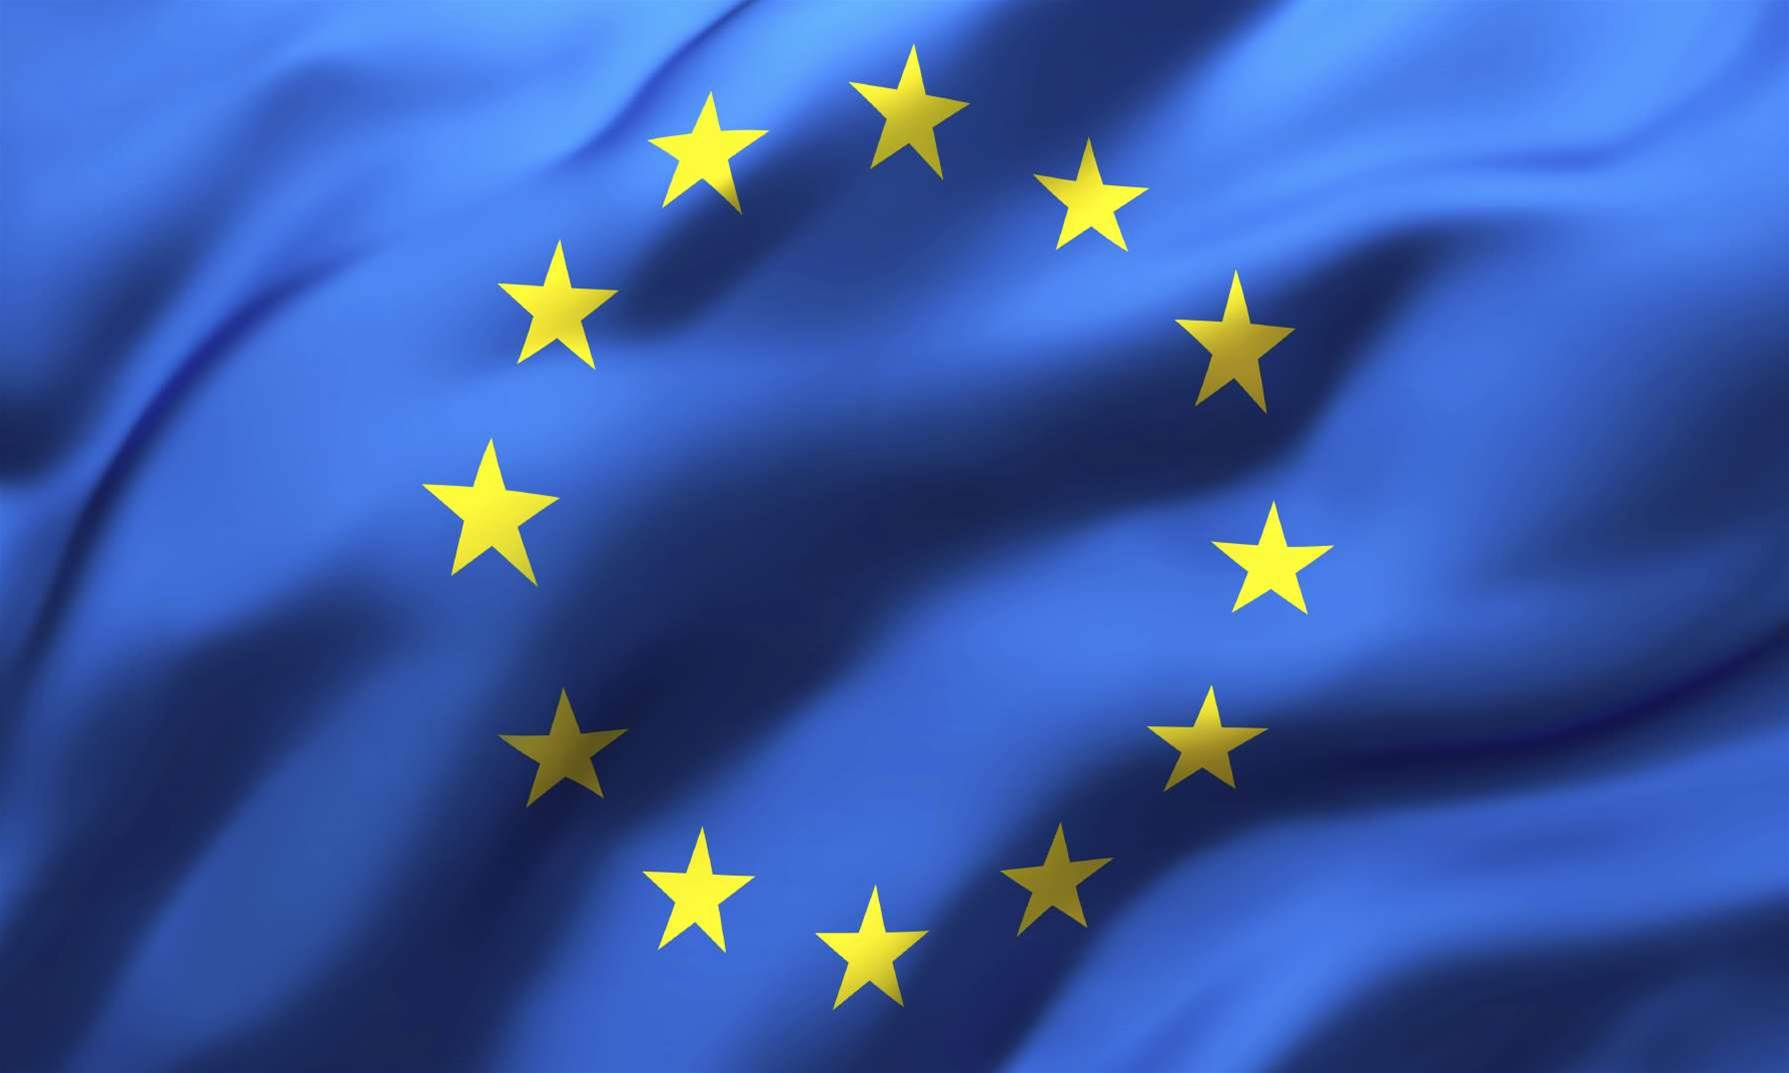 EU places bets on 5G